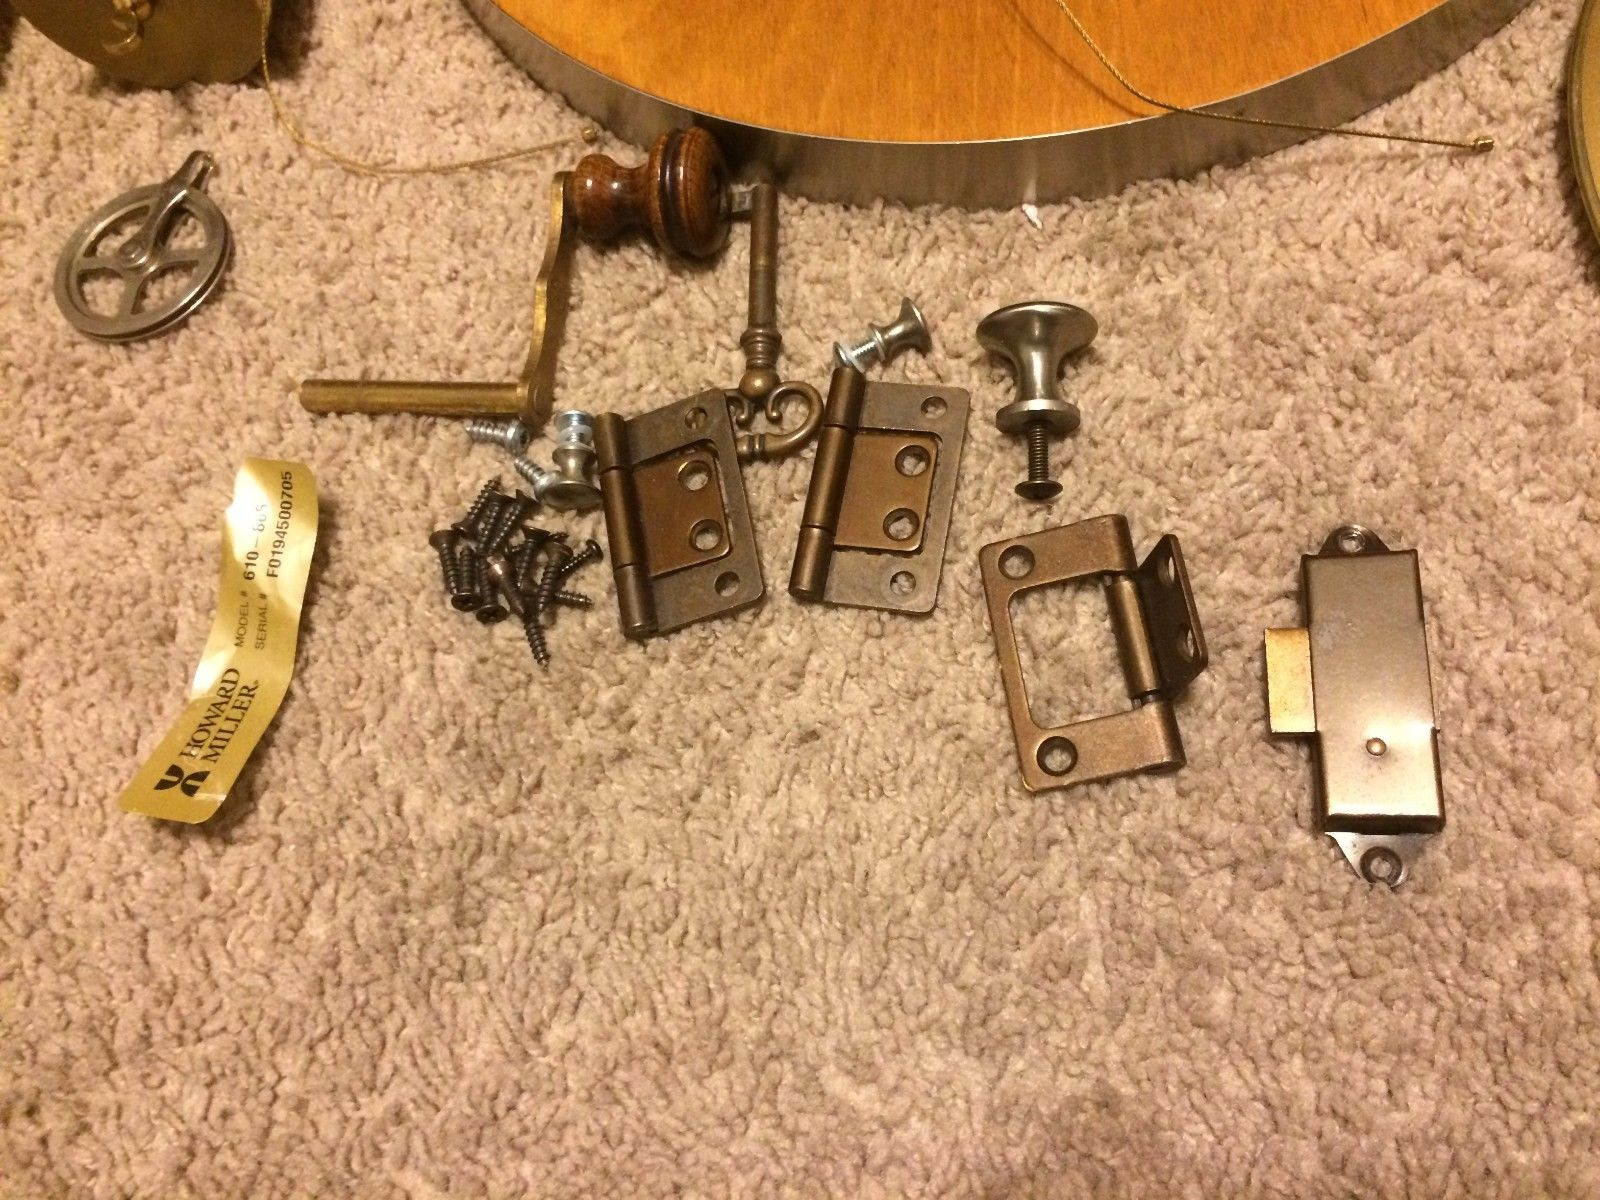 Cool Howard Miller Clock Parts for Repairing Clock Part: Howard Miller Clock Parts | Howard Miller Large Wall Clocks | Ridgeway Grandfather Clock Parts